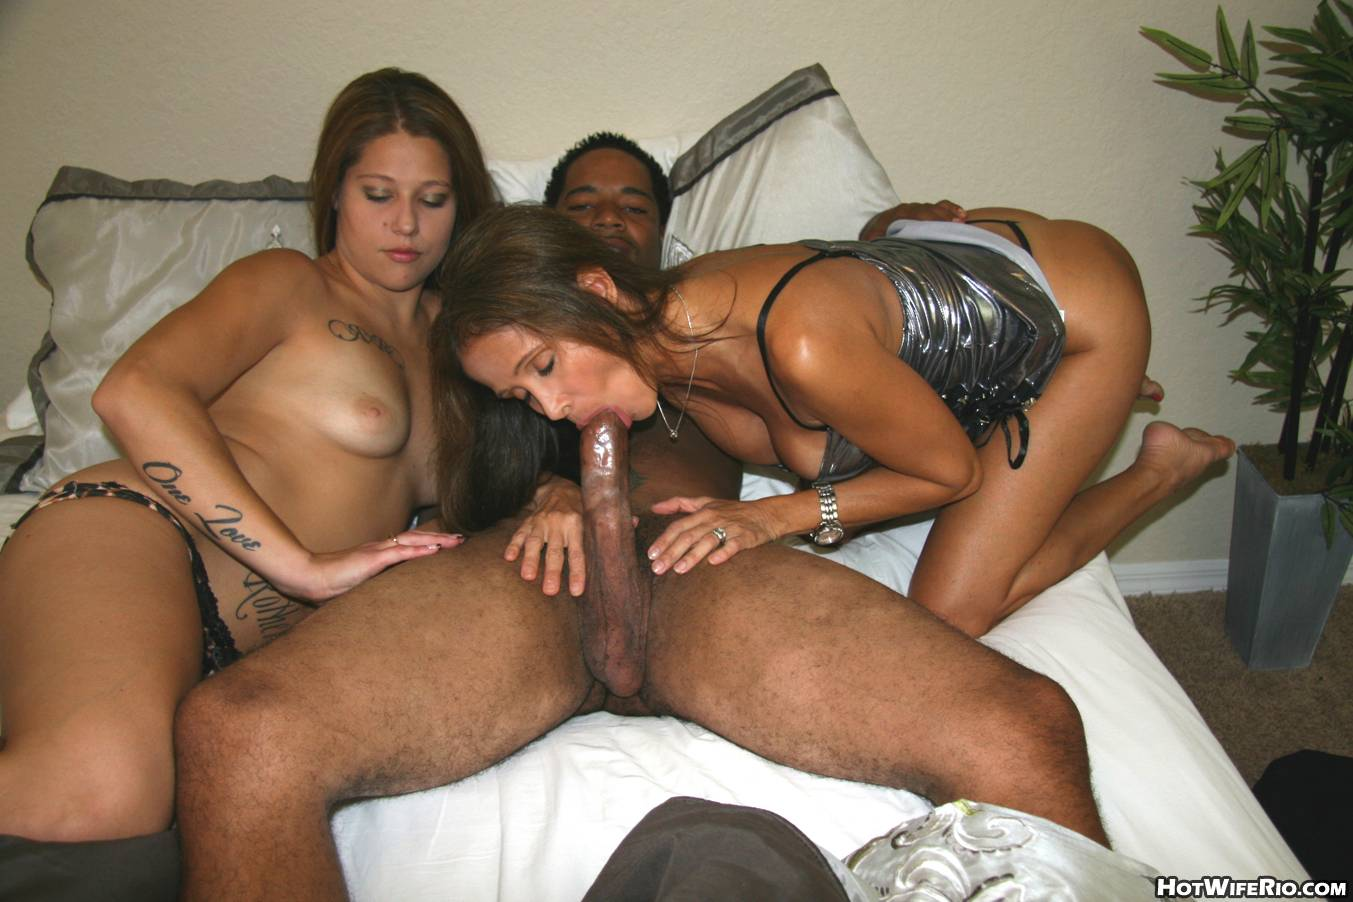 Cock sucking ebony bitch gets her fat black pussy fucked and her ass jizzed on 1